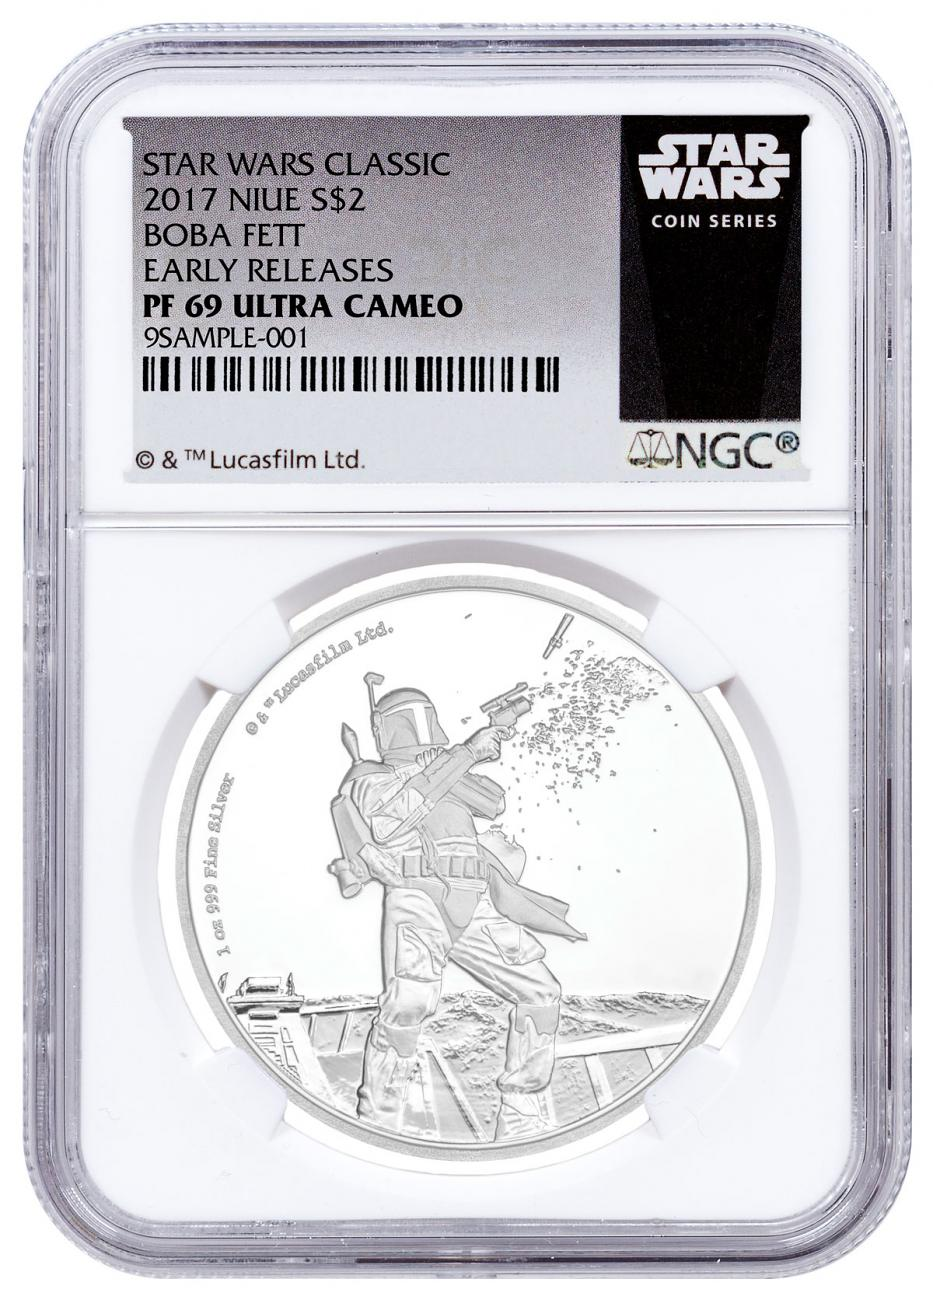 2017 Niue Star Wars Classic - Boba Fett 1 oz Silver Proof $2 Coin NGC PF69 UC ER Star Wars Label